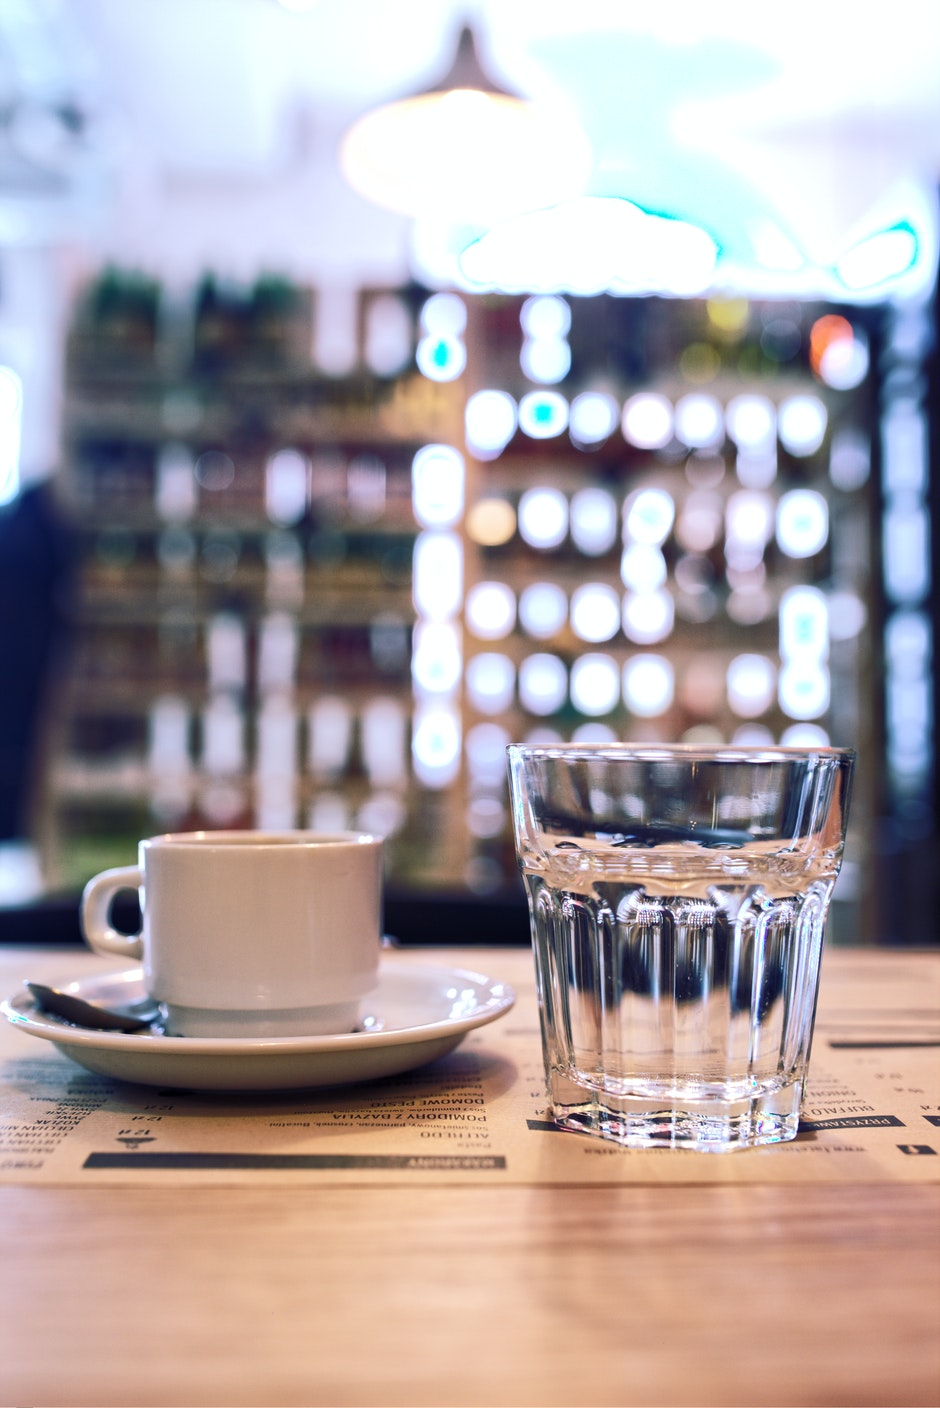 Cup of coffee and glass of water